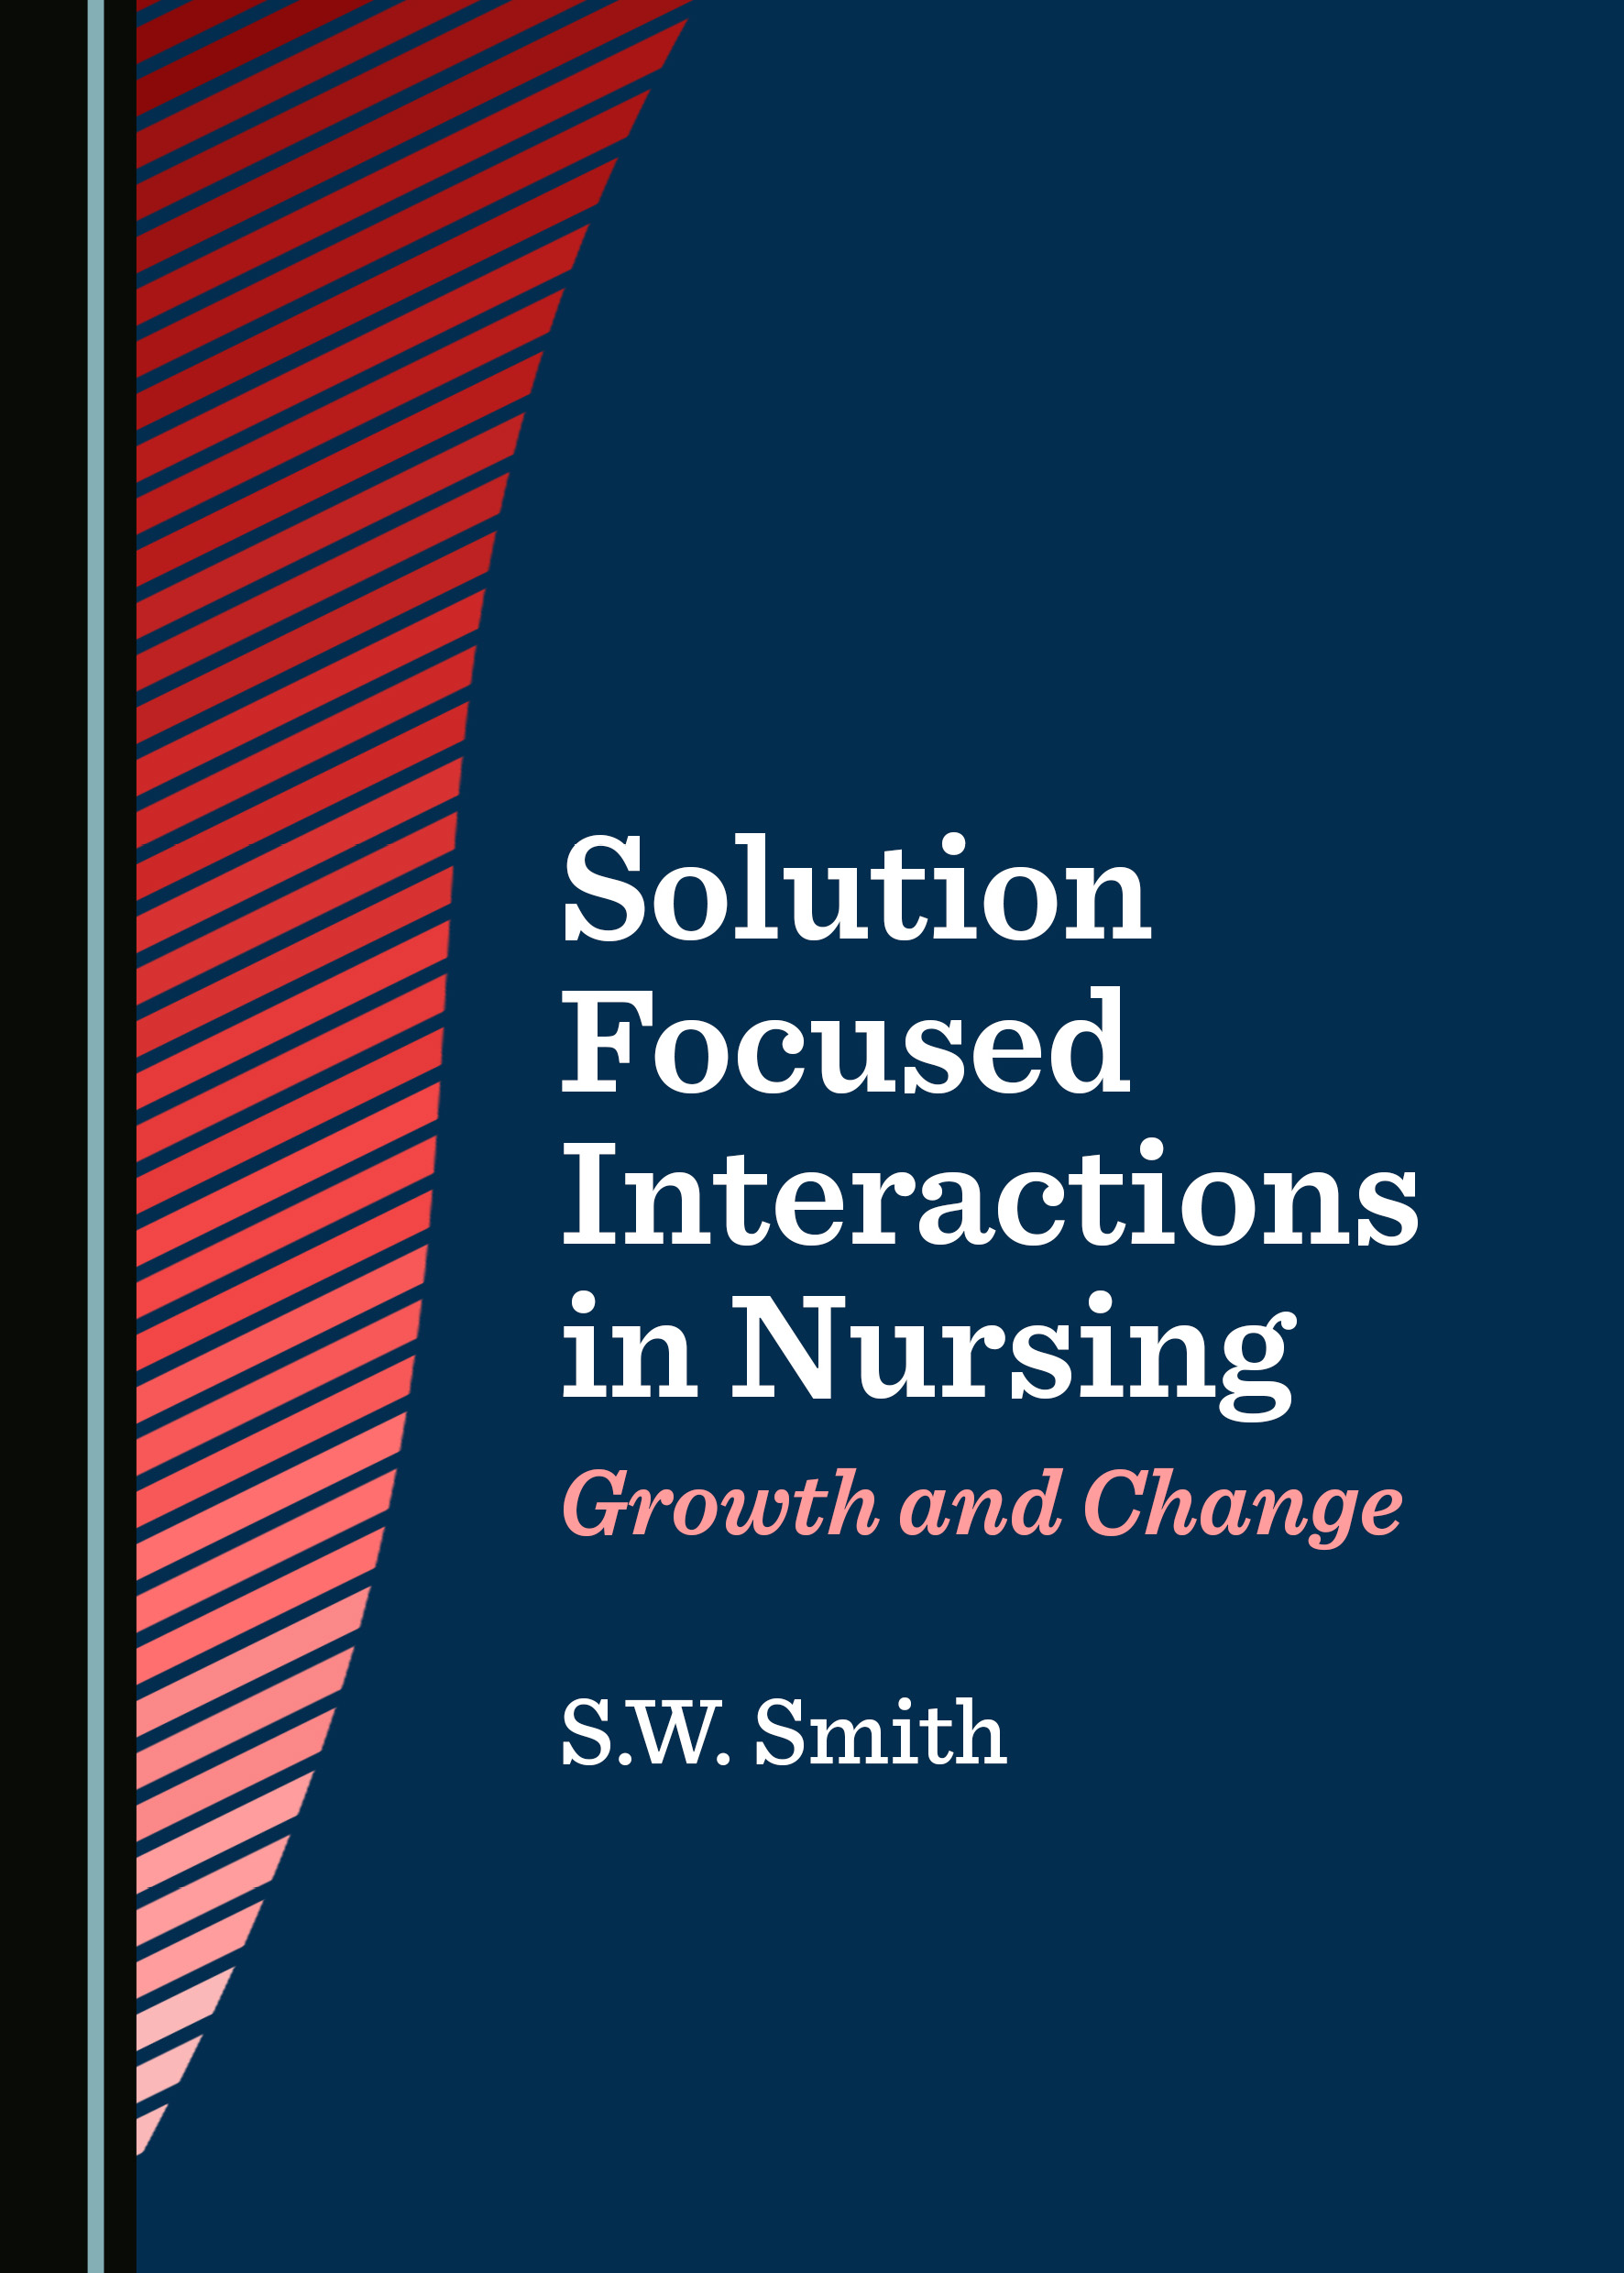 Solution Focused Interactions in Nursing: Growth and Change